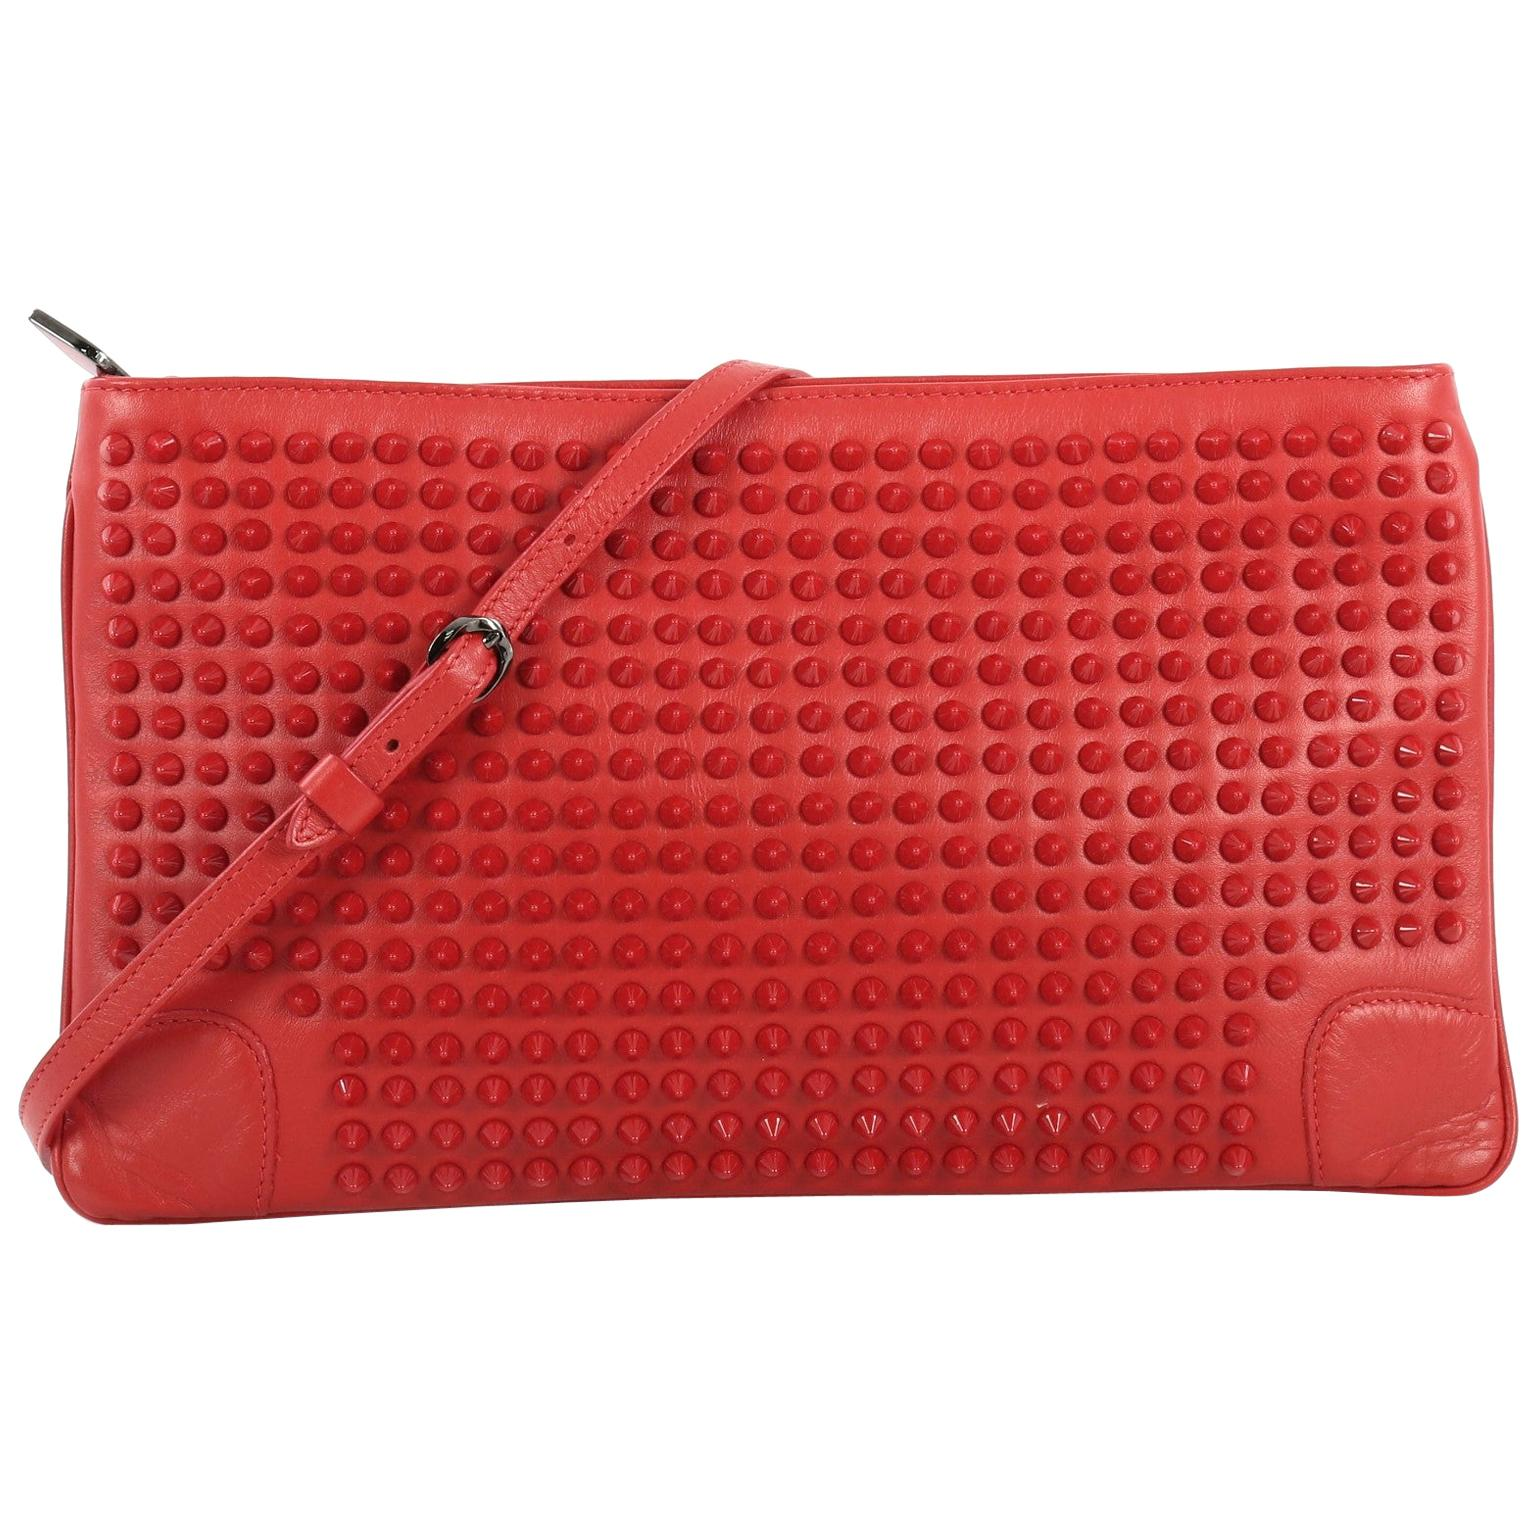 211957564b2 Christian Louboutin Red Boudoir Grained-leather Chain Wallet